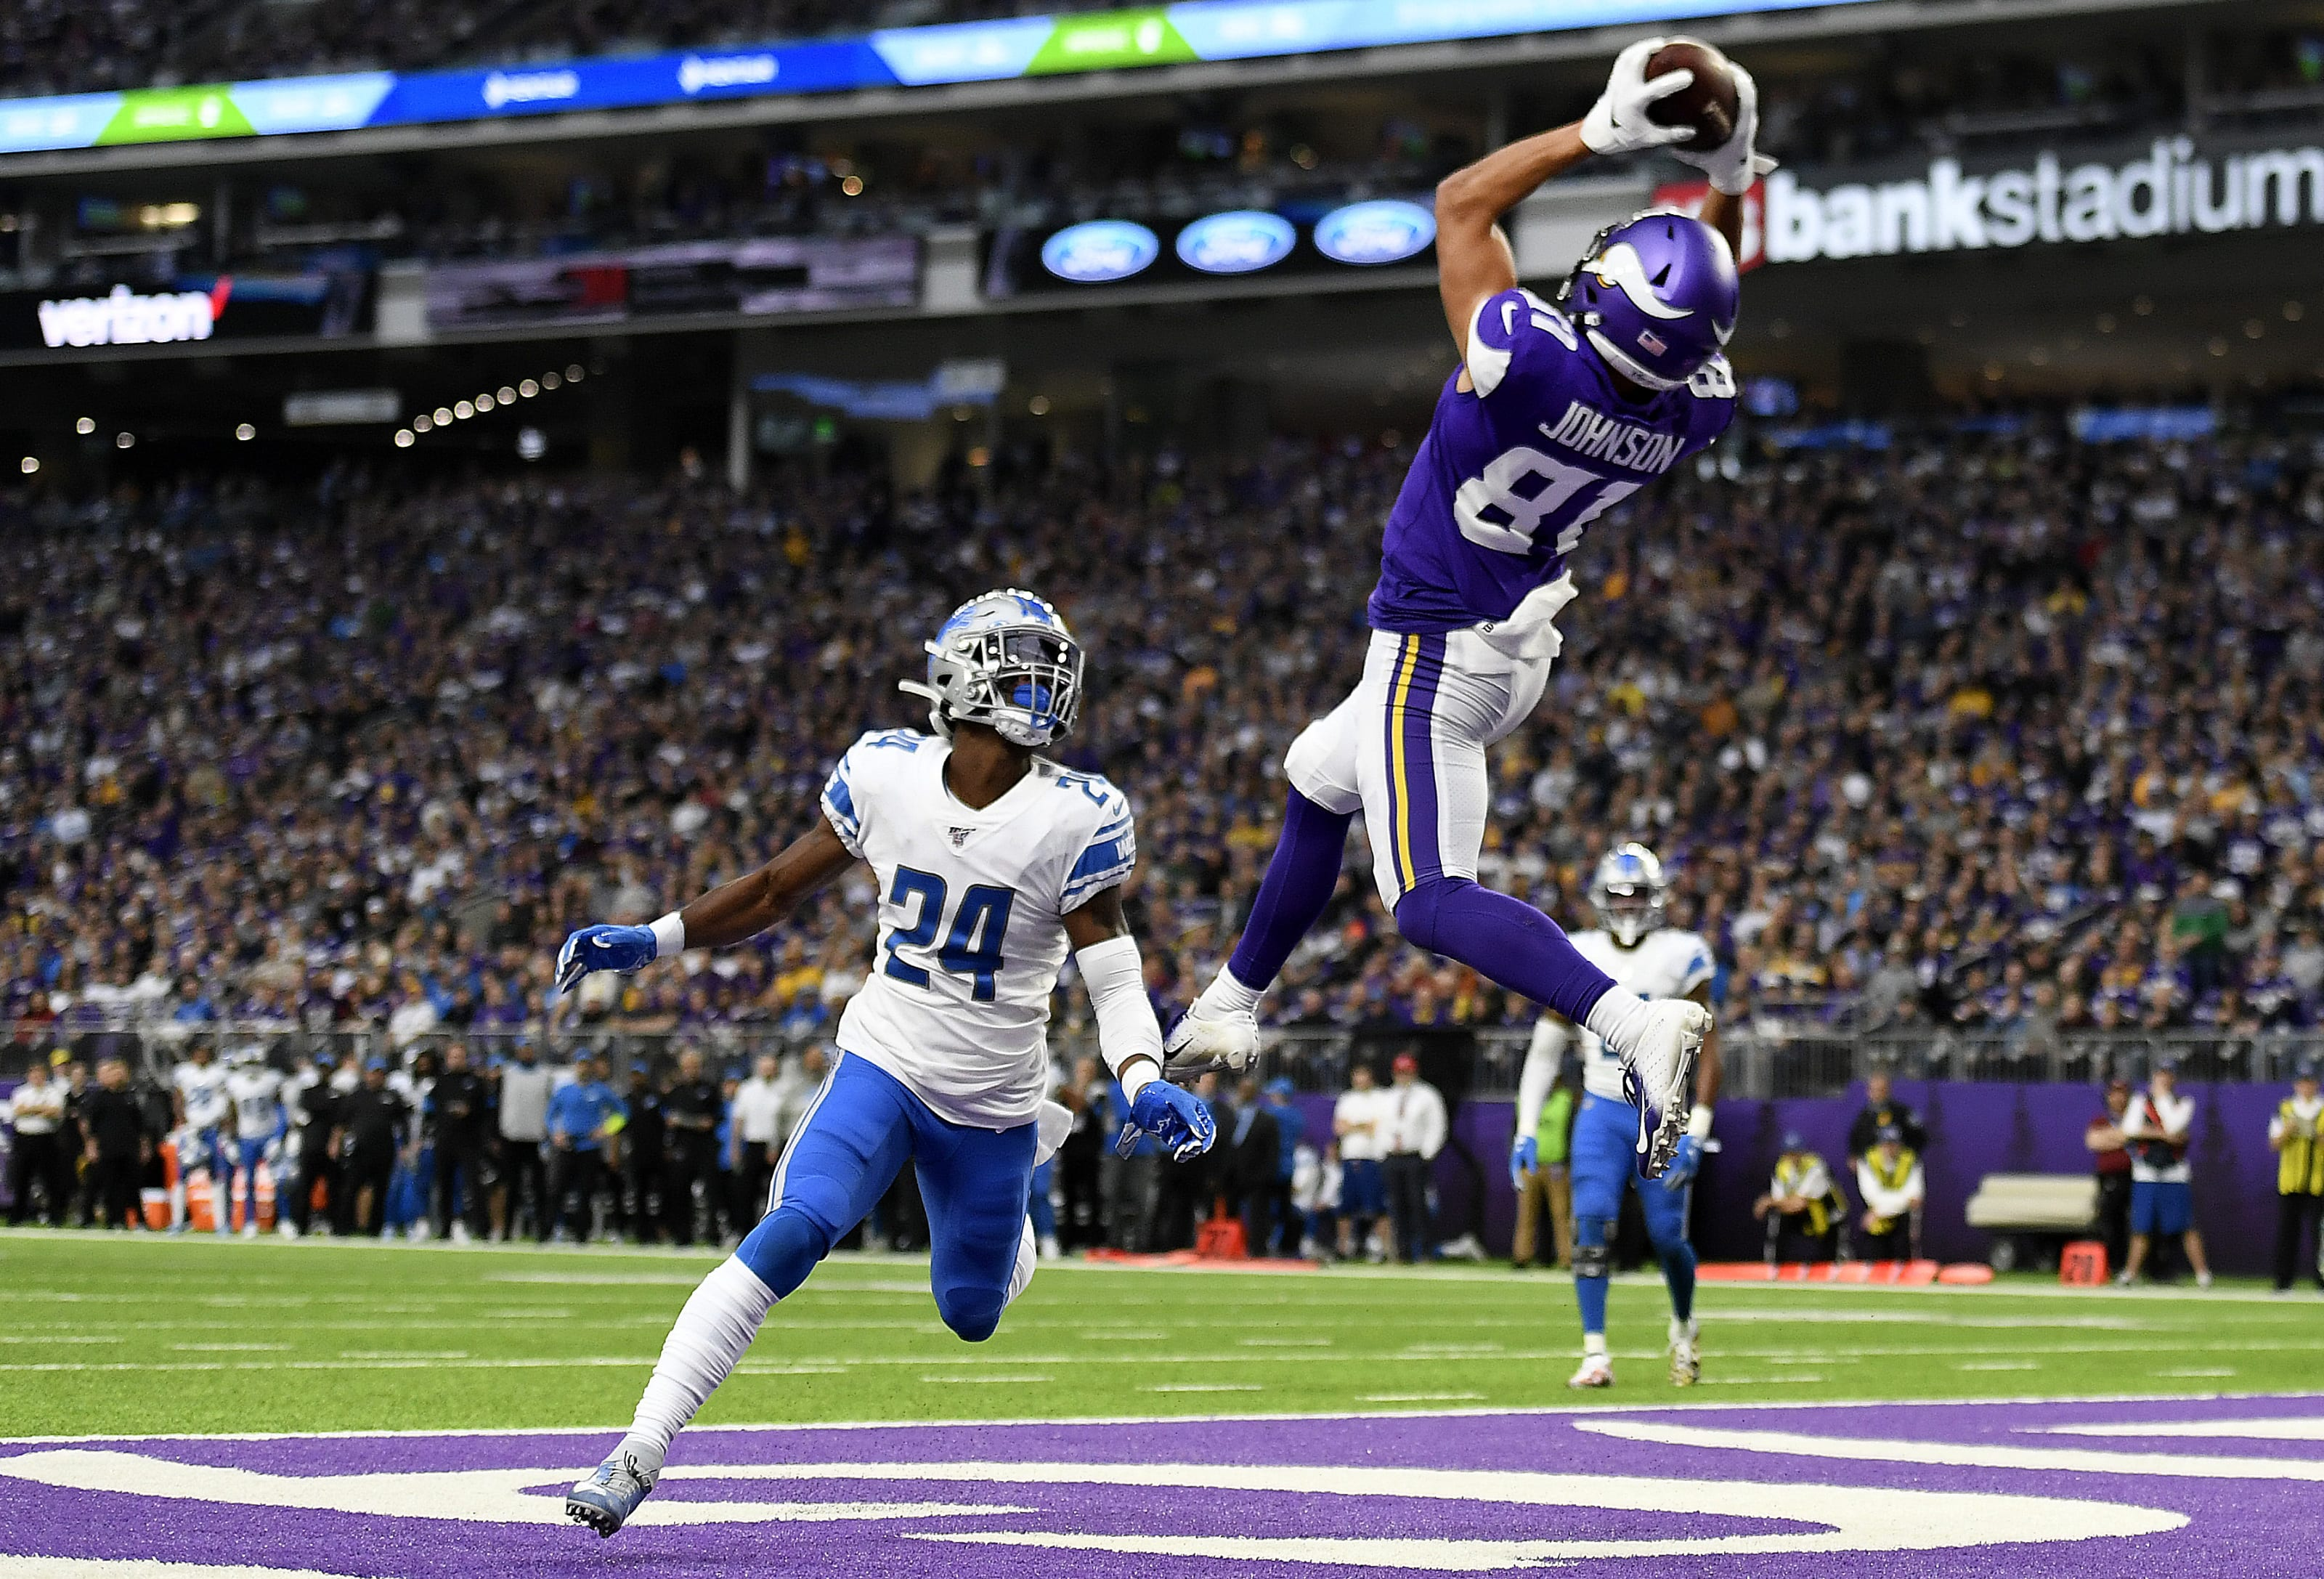 MINNEAPOLIS, MINNESOTA - DECEMBER 08: Minnesota Vikings wide receiver Bisi Johnson #81 catches a pass for a touchdown as Detroit Lions cornerback Amani Oruwariye #24 defends during the first quarter at U.S. Bank Stadium on December 08, 2019 in Minneapolis, Minnesota. (Photo by Hannah Foslien/Getty Images)